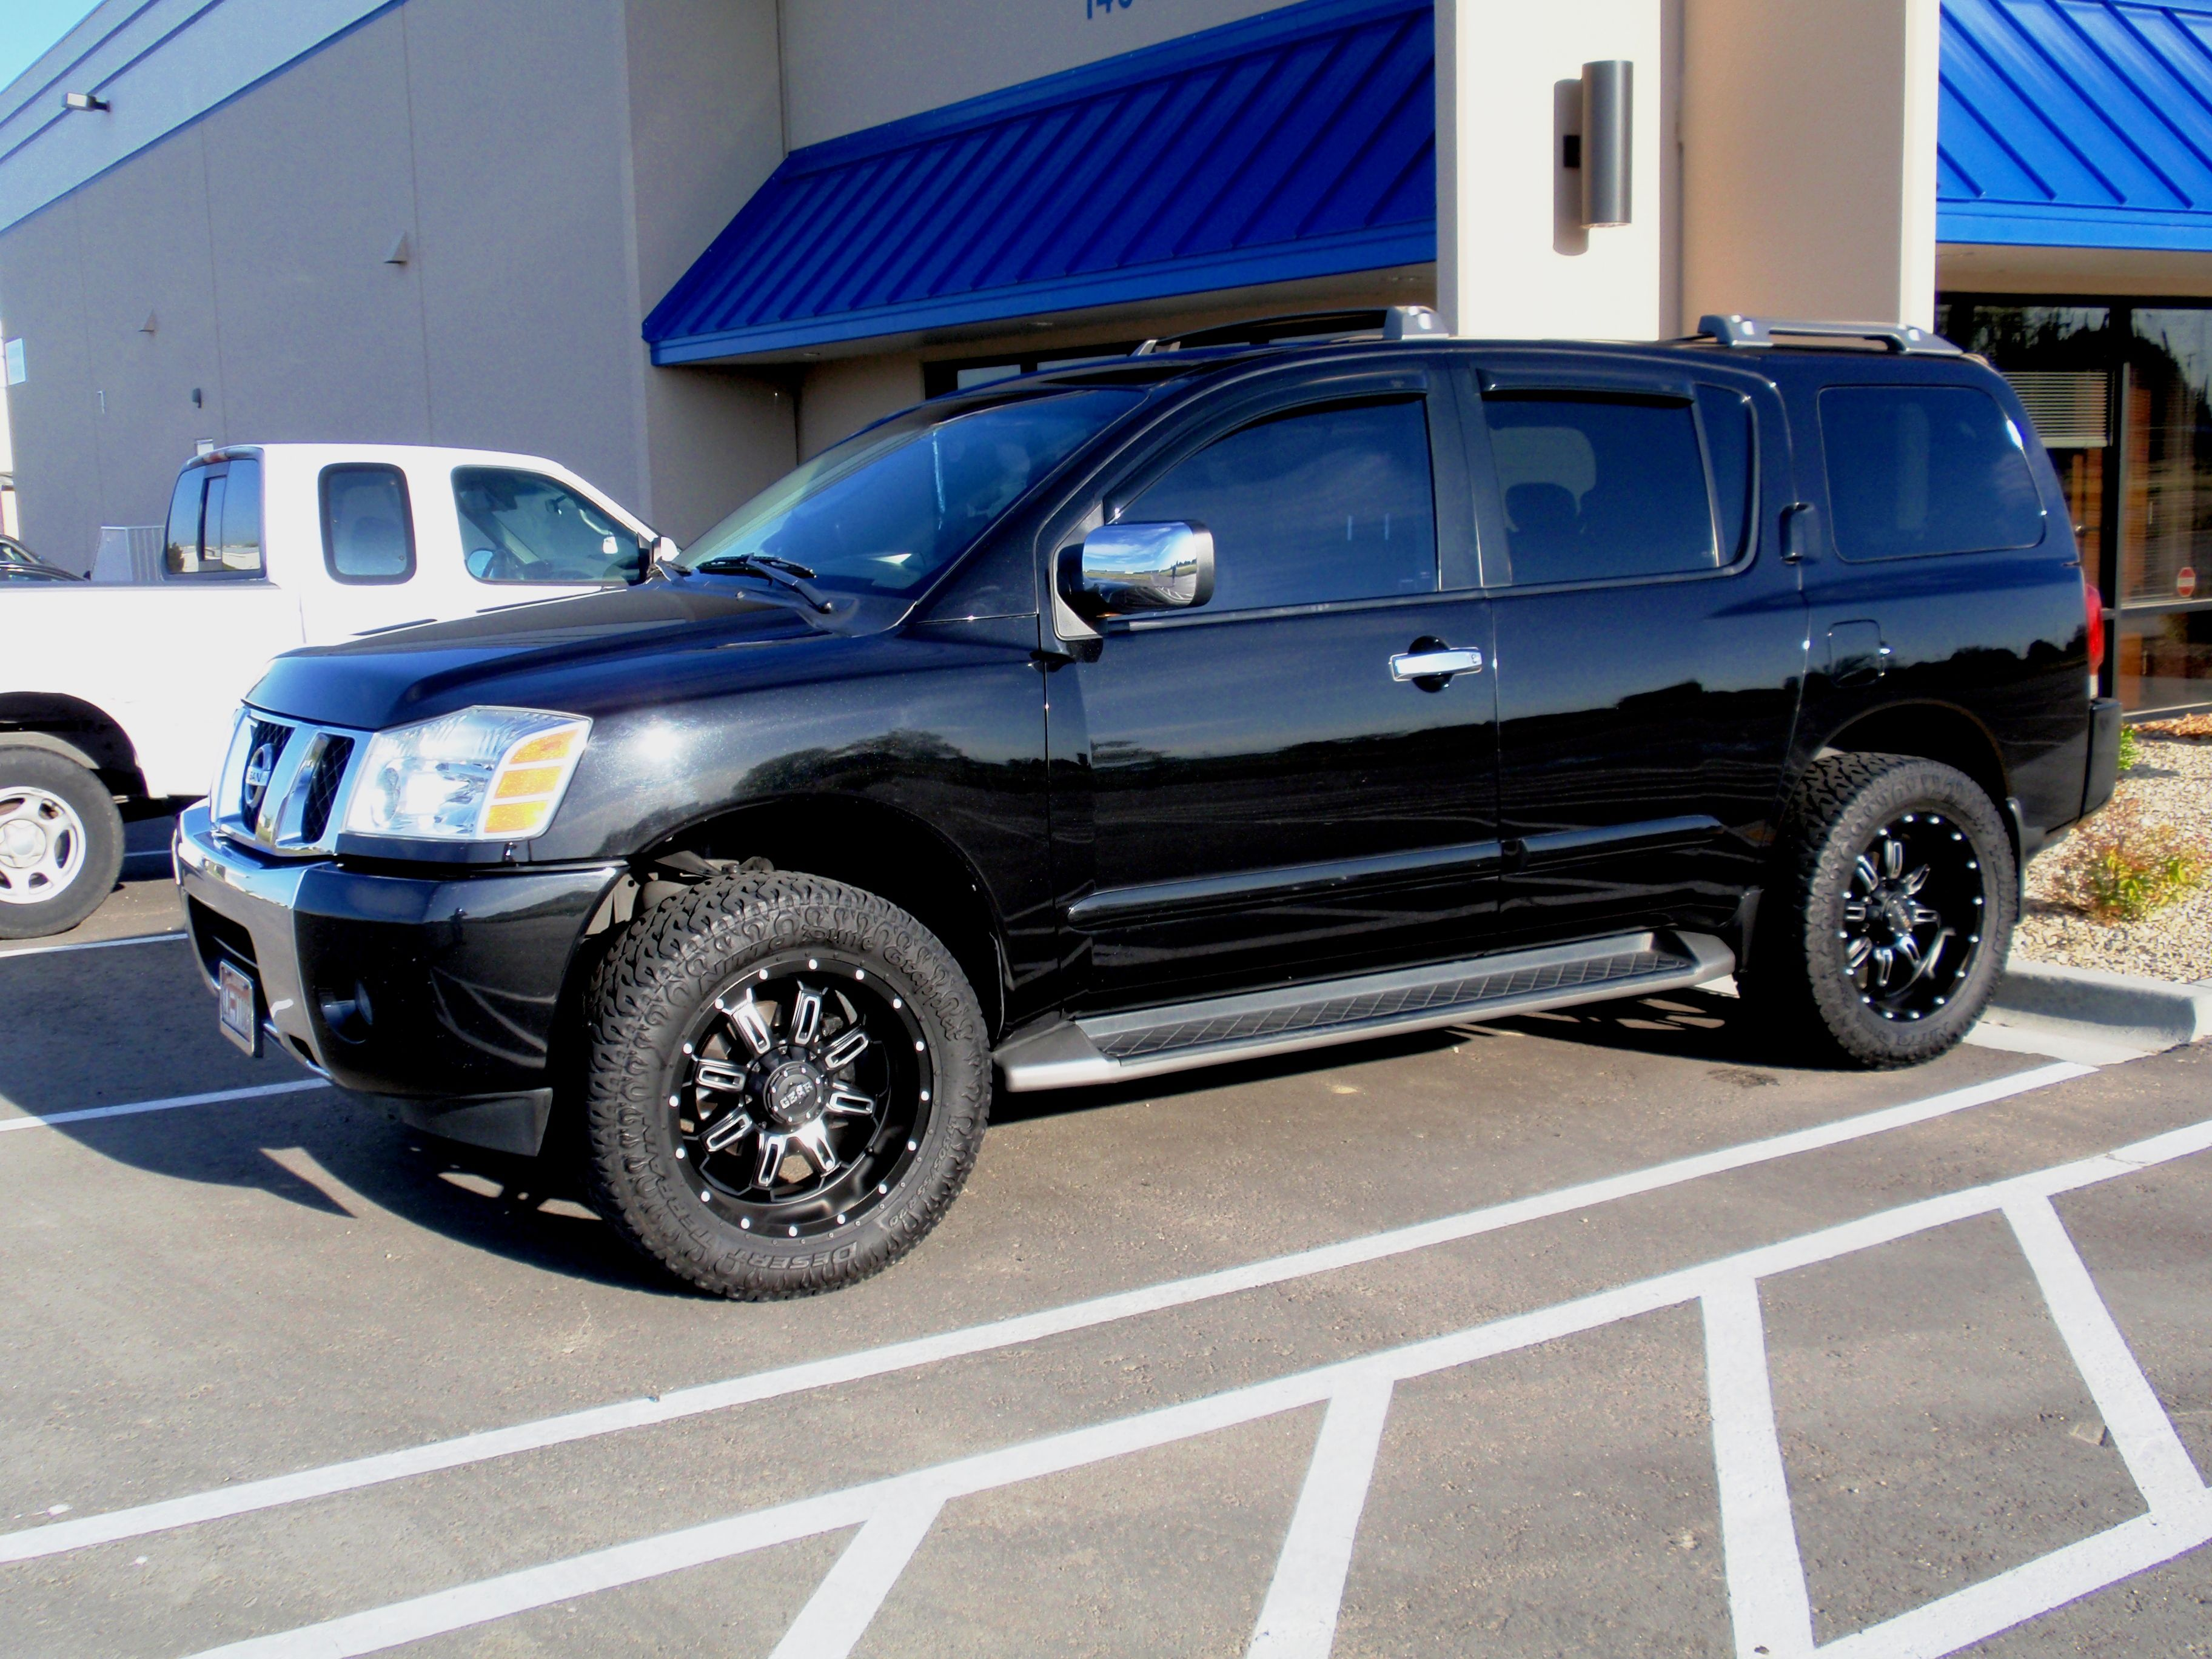 12 best nissan armada images on pinterest nissan dream cars and nissan armada there kinda nice vanachro Images